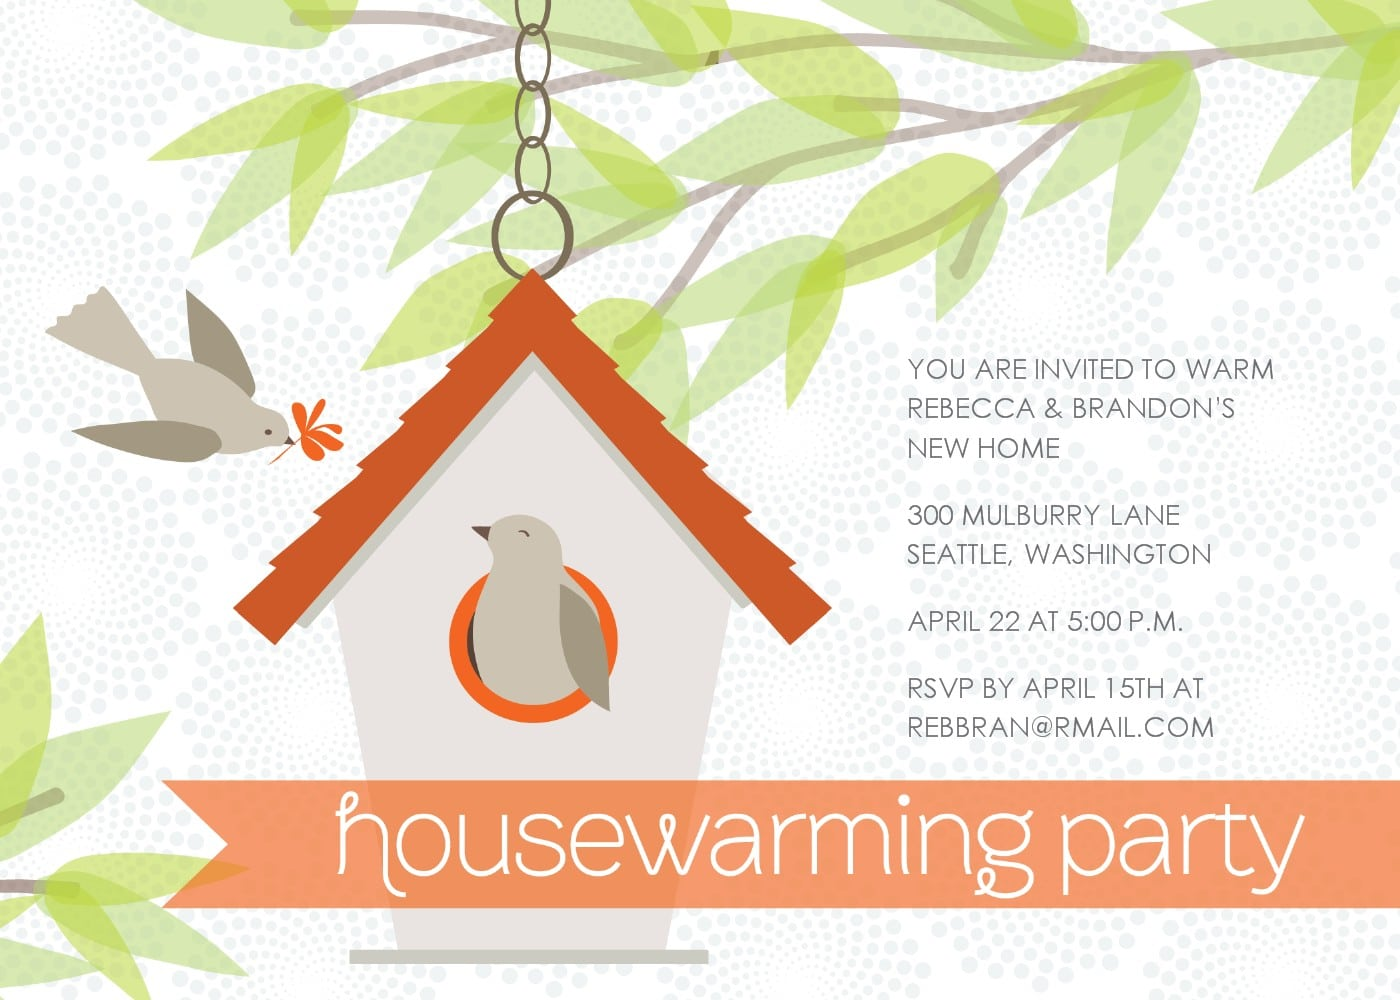 Concert Ticket Invitationsinvitation  Housewarming Invitation